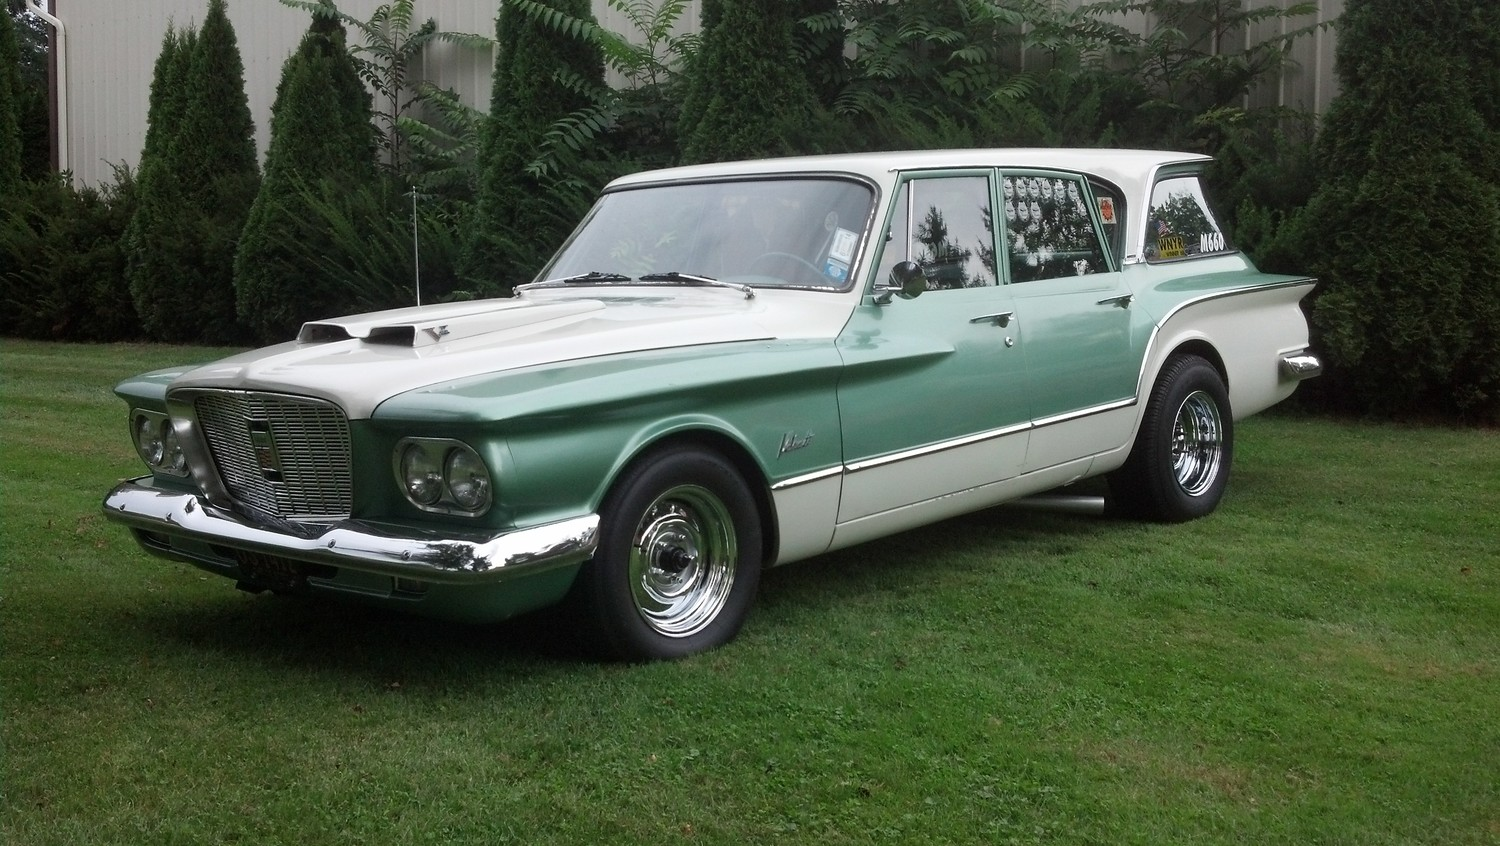 1960 Plymouth Valiant Rochester Mopars And Friends Car Club For Sale Prev Next